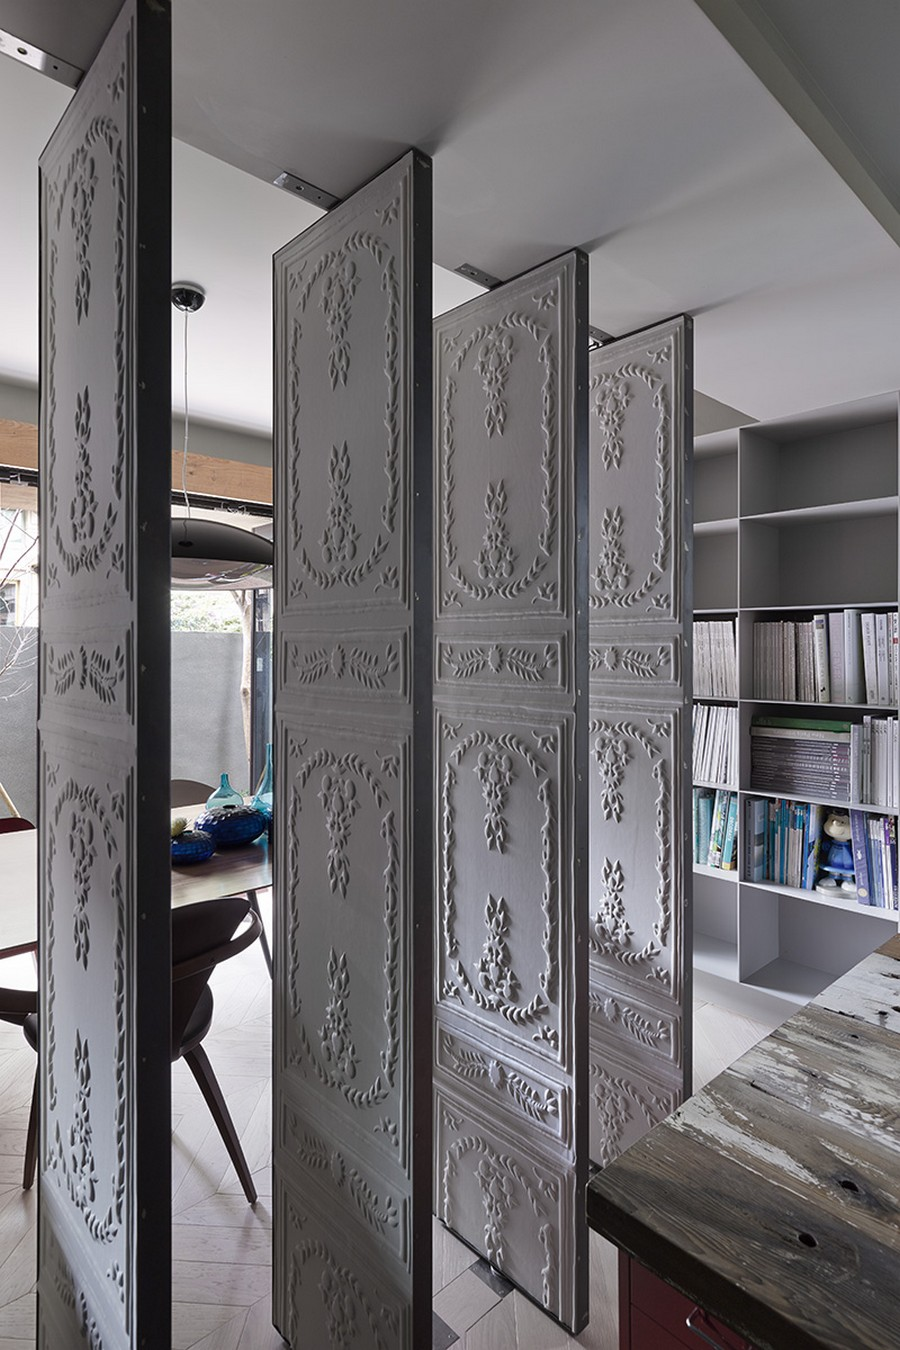 Lovely carved doors bring in traditional Taipei design